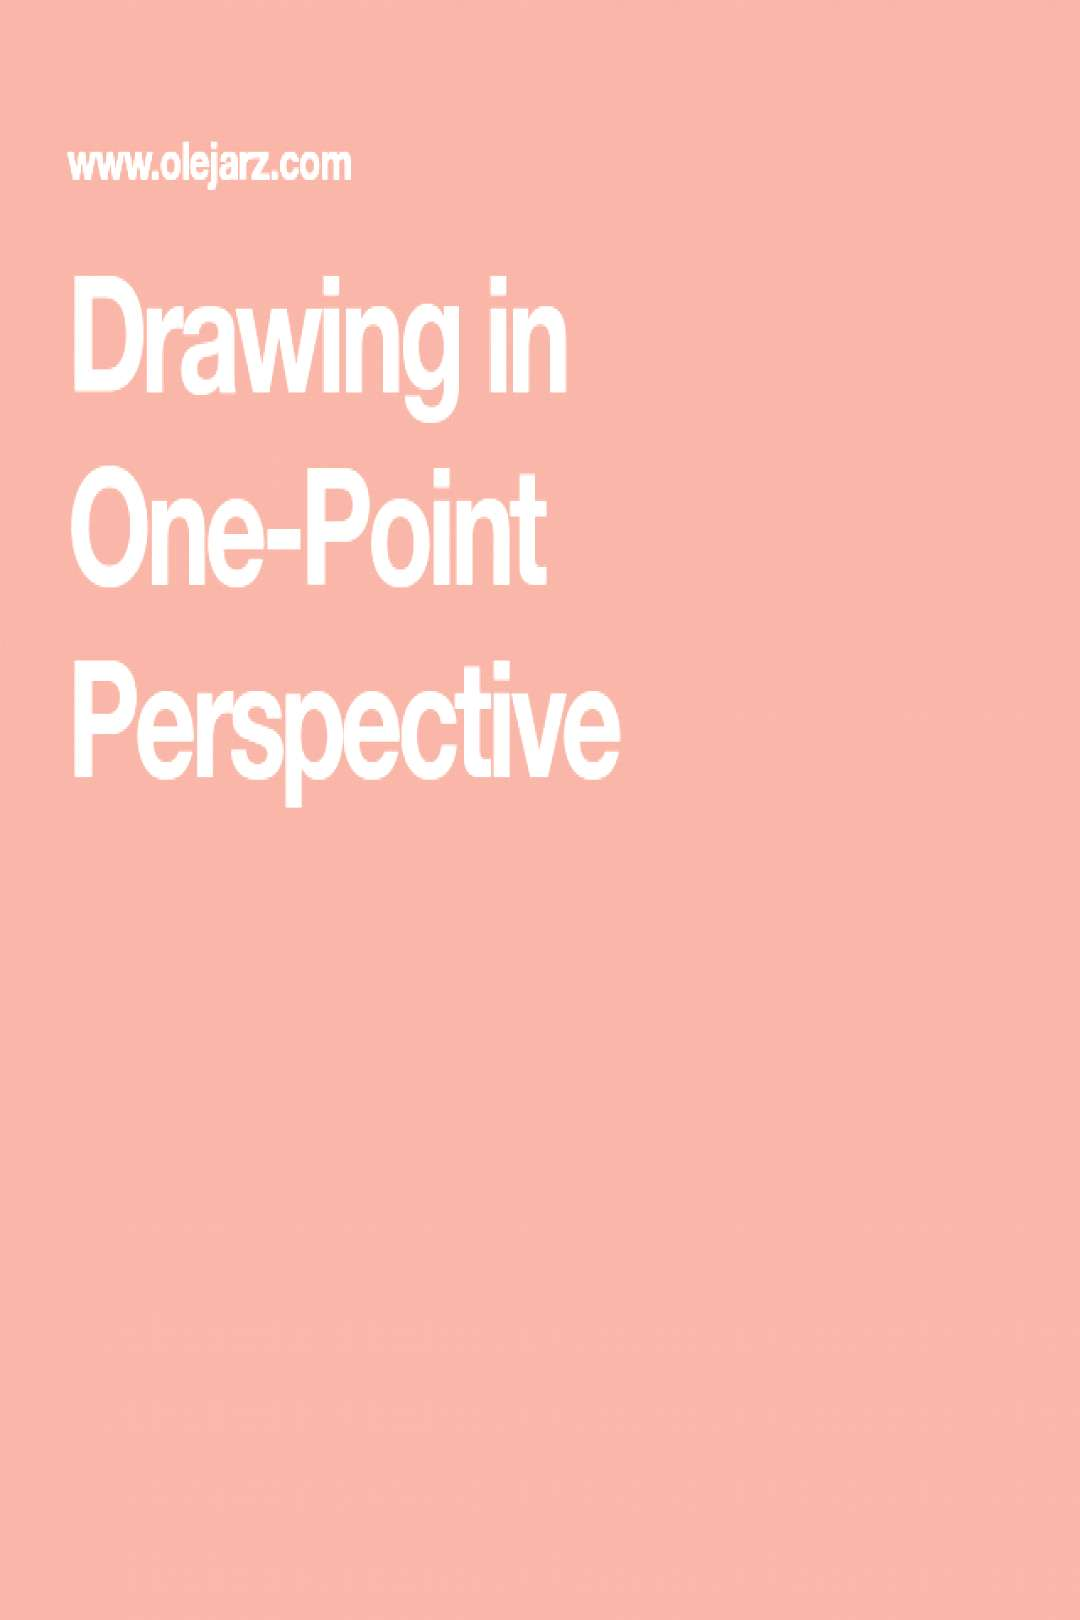 Drawing in One-Point Perspective